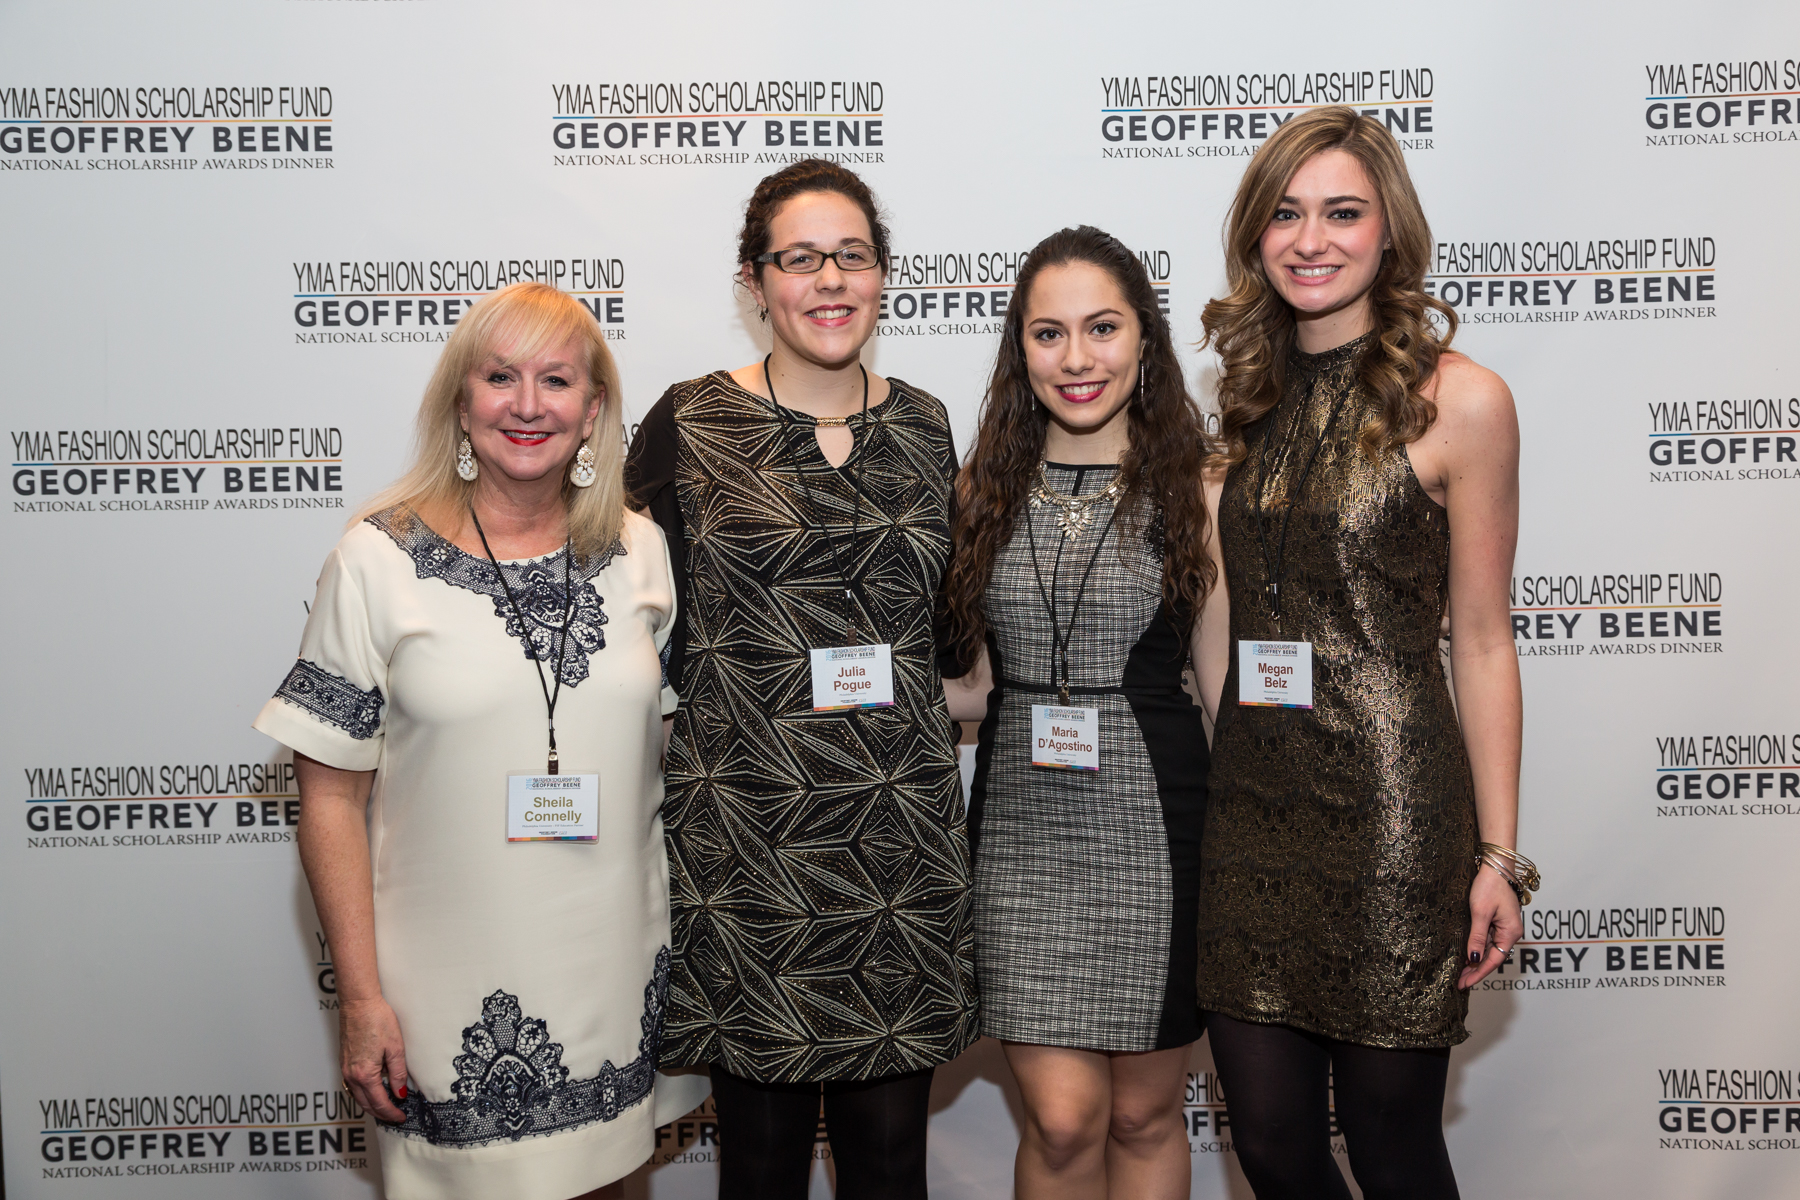 Fashion design program director Sheila Connelly with YMA scholarship winners (left to right) Julia Pogue, Maria D'Agostino and Megan Belz.